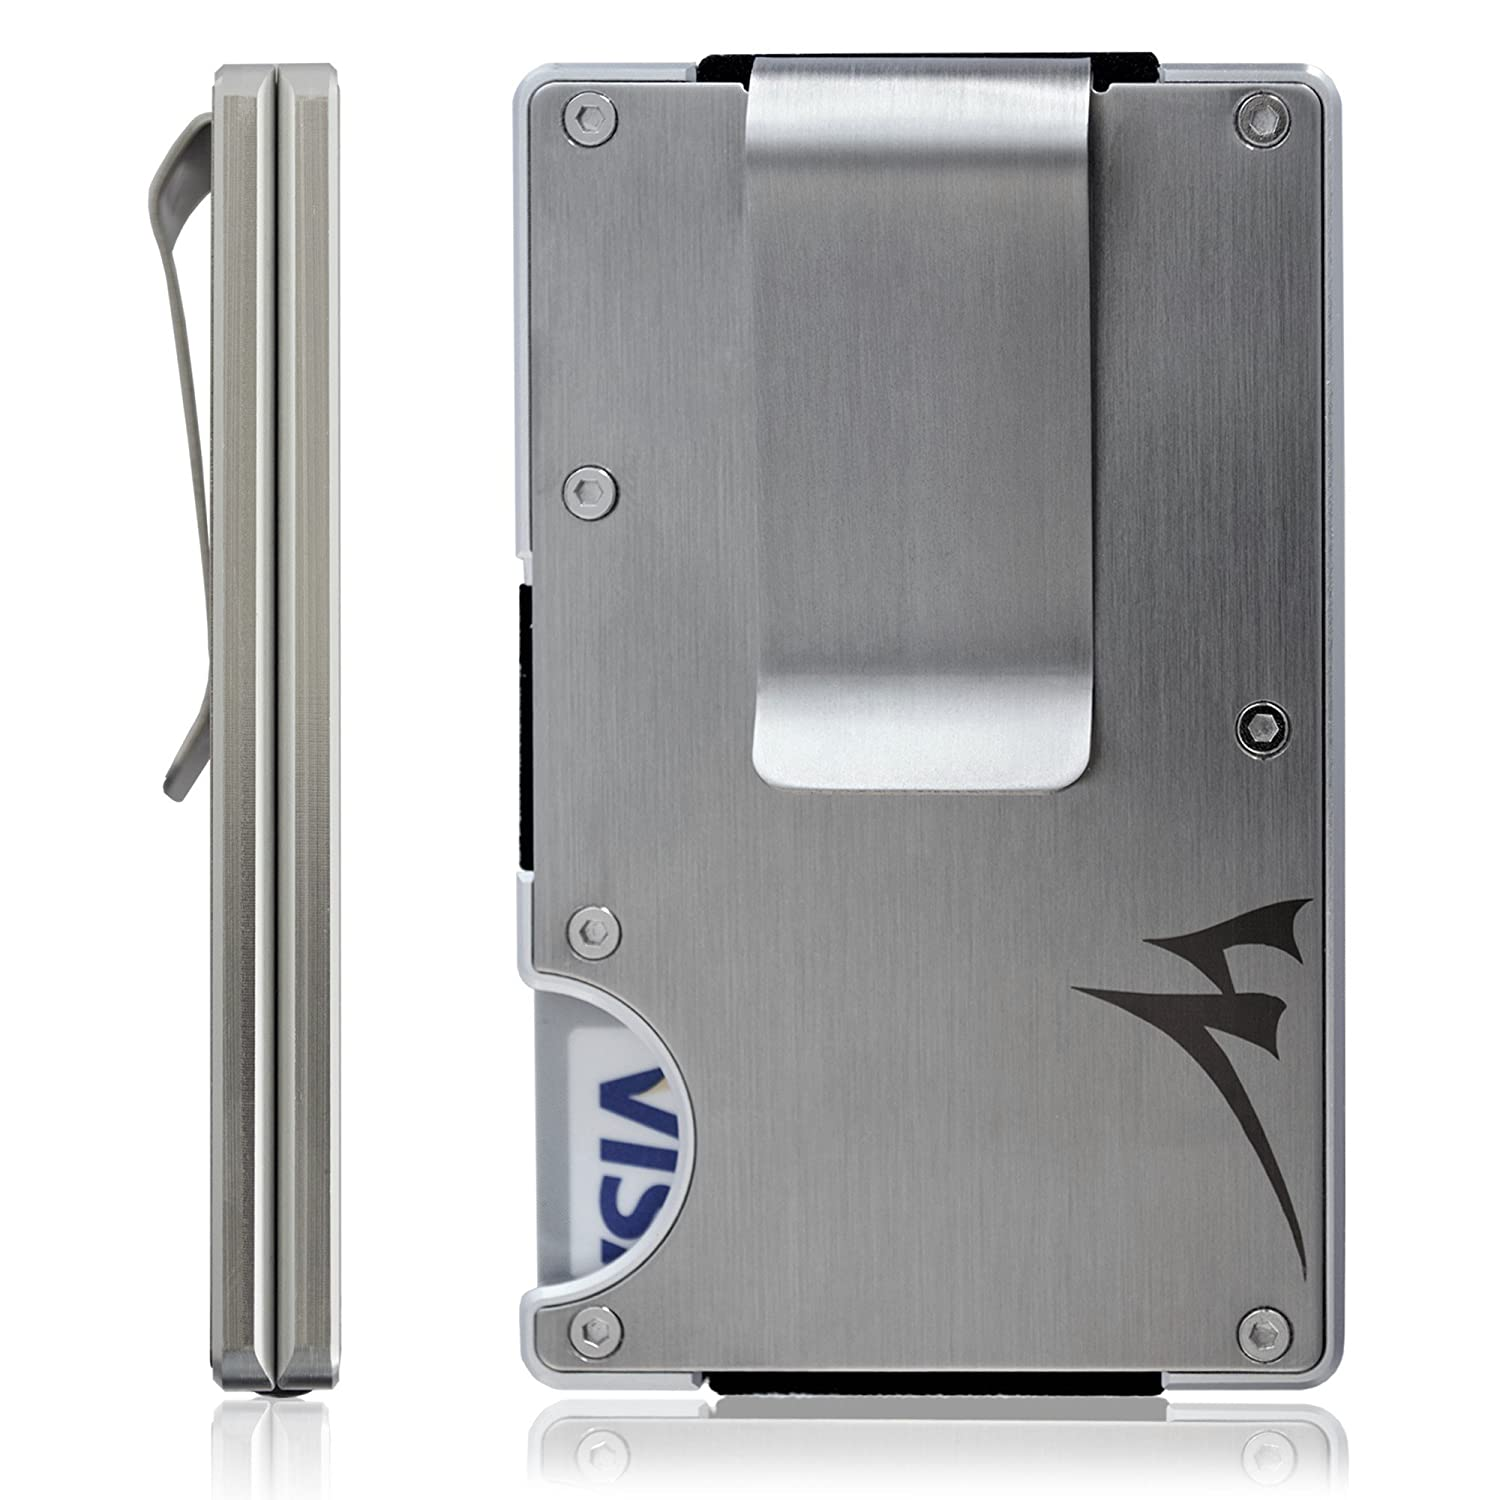 Scanning-proof Radio Frequency Identification Cover Protector Credit Card Aluminum Foil Bracket Scanning-proof Card Cover Factories And Mines Back To Search Resultssecurity & Protection